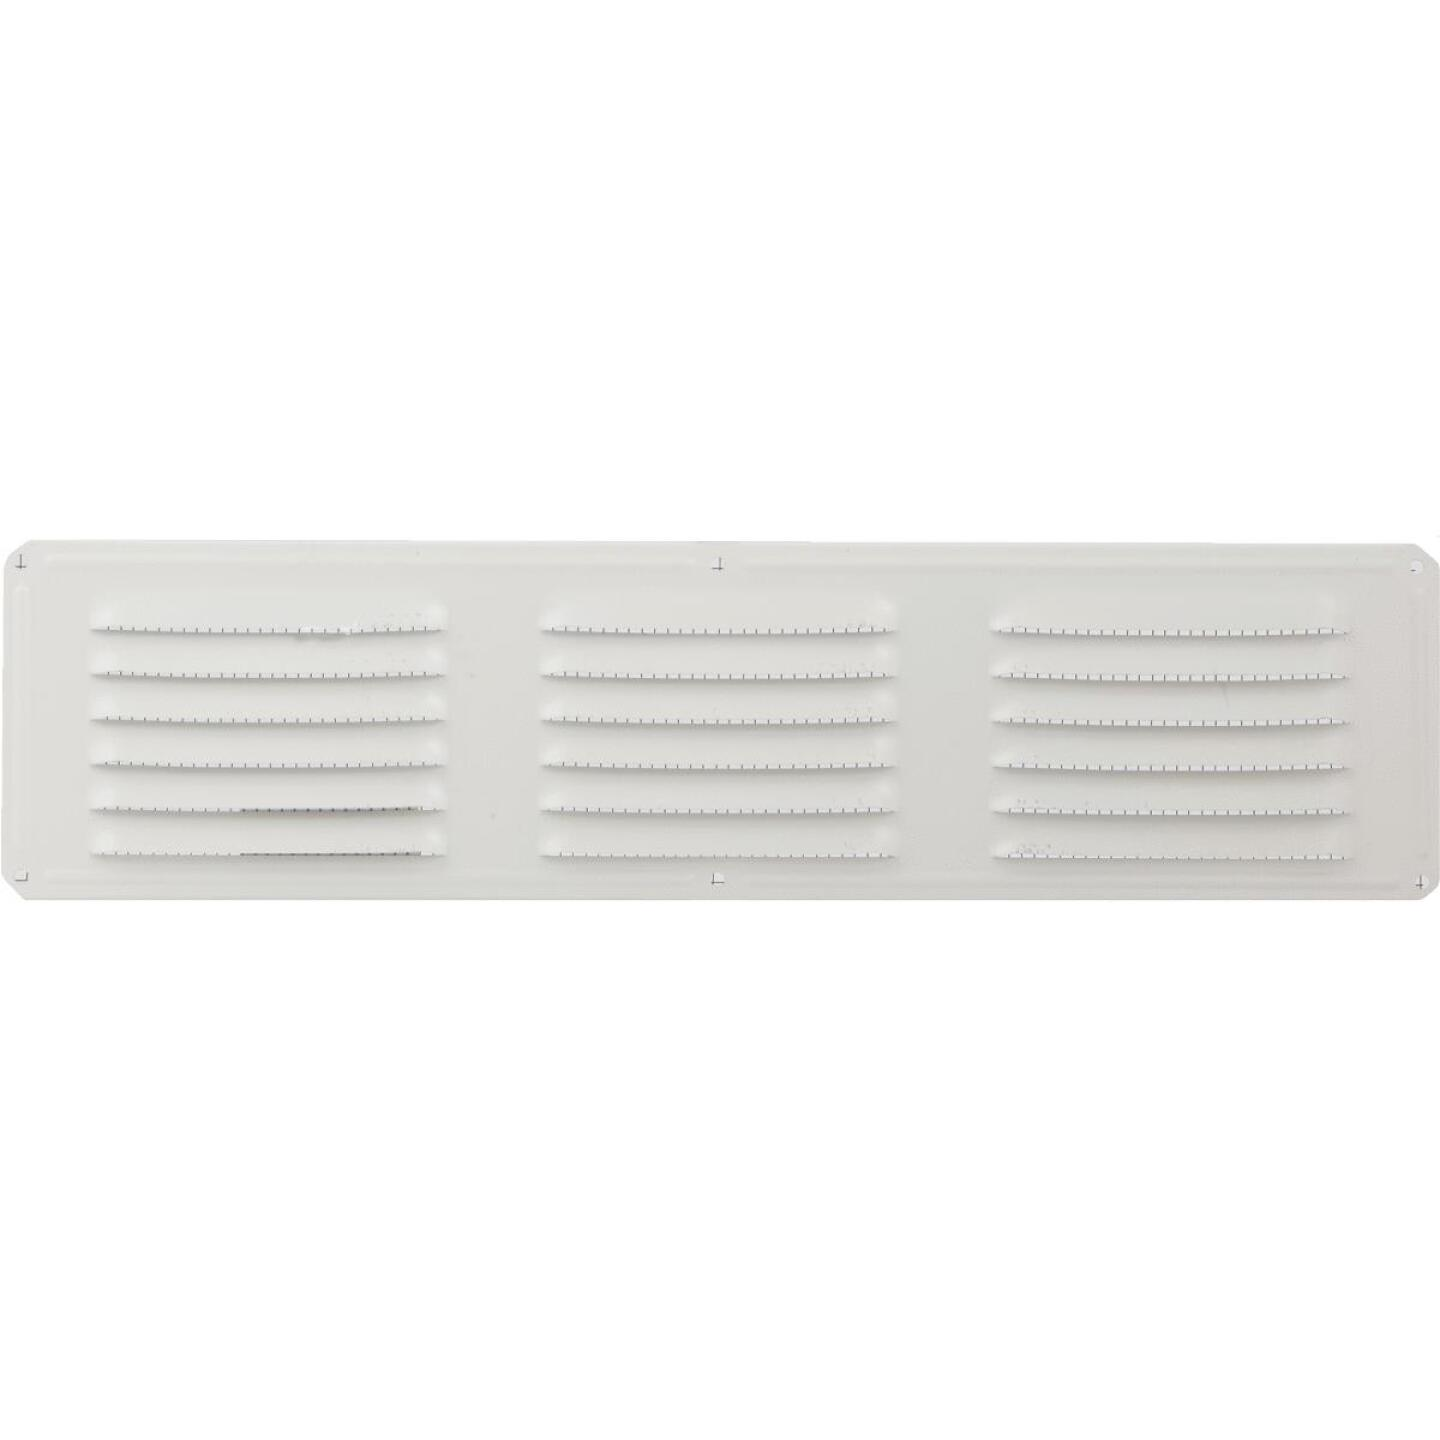 Air Vent 16 In. x 4 In. White Aluminum Under Eave Vent Image 2